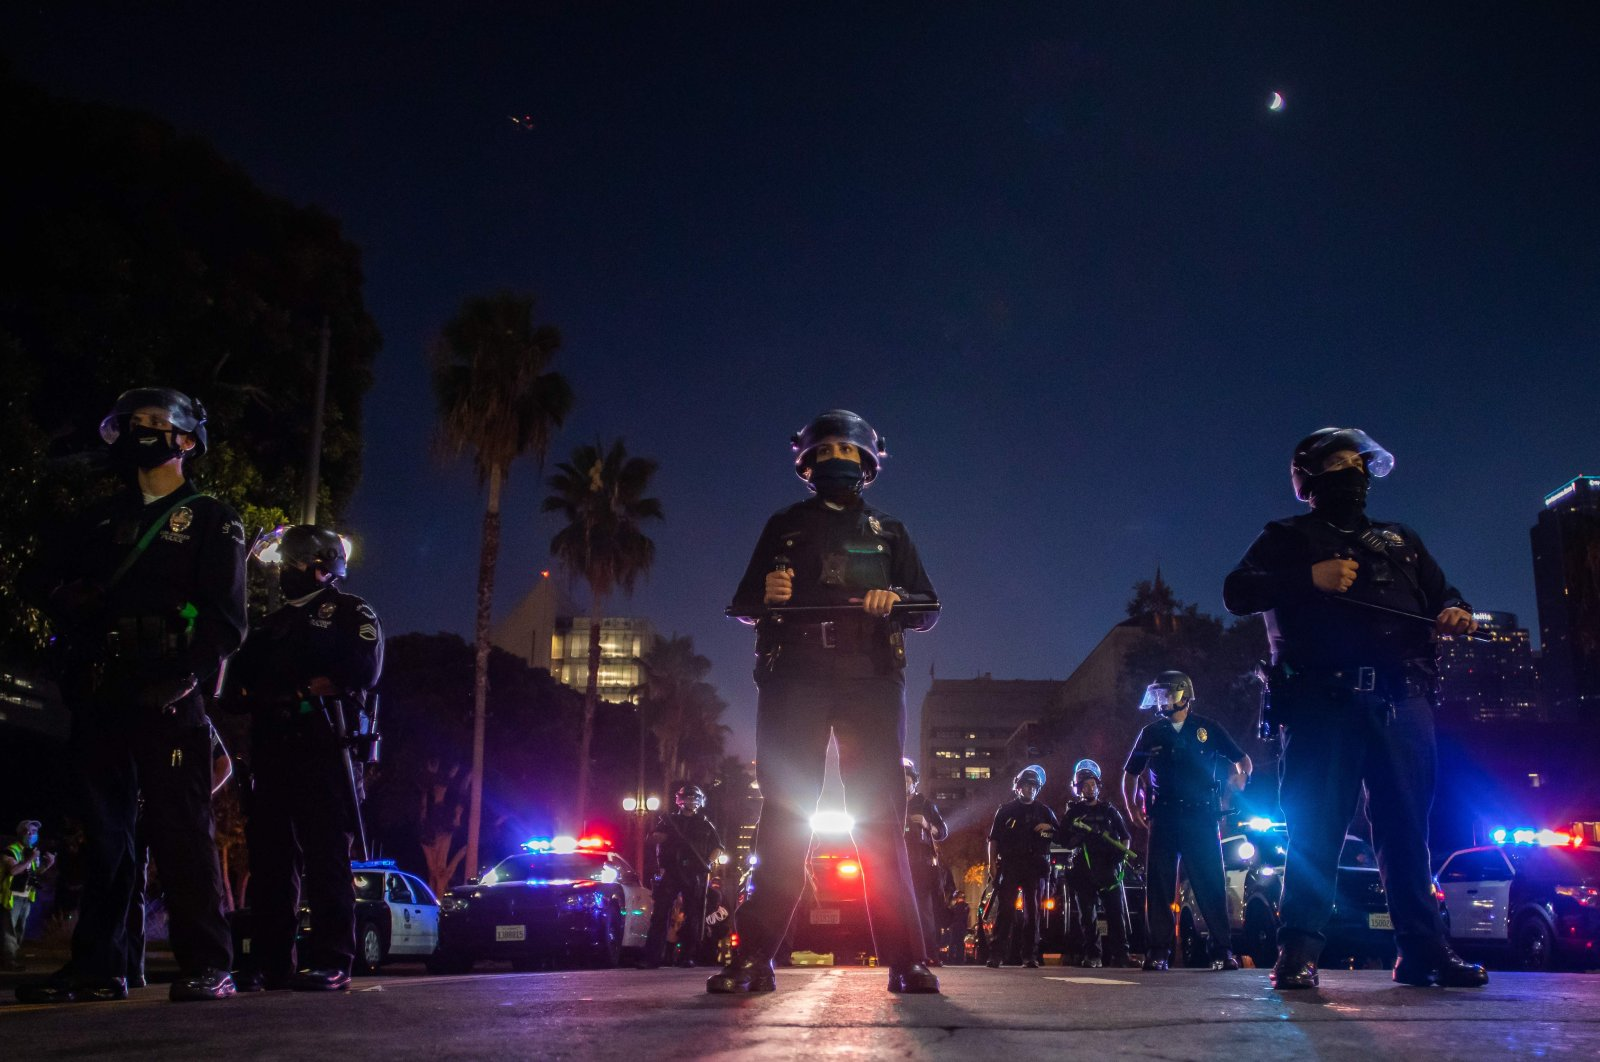 Police officers hold a line in front of LA City Hall during a protest demanding justice for George Floyd, Breonna Taylor and also in solidarity with Portland's protests, in Downtown Los Angeles, California, July 25, 2020. (AFP Photo)